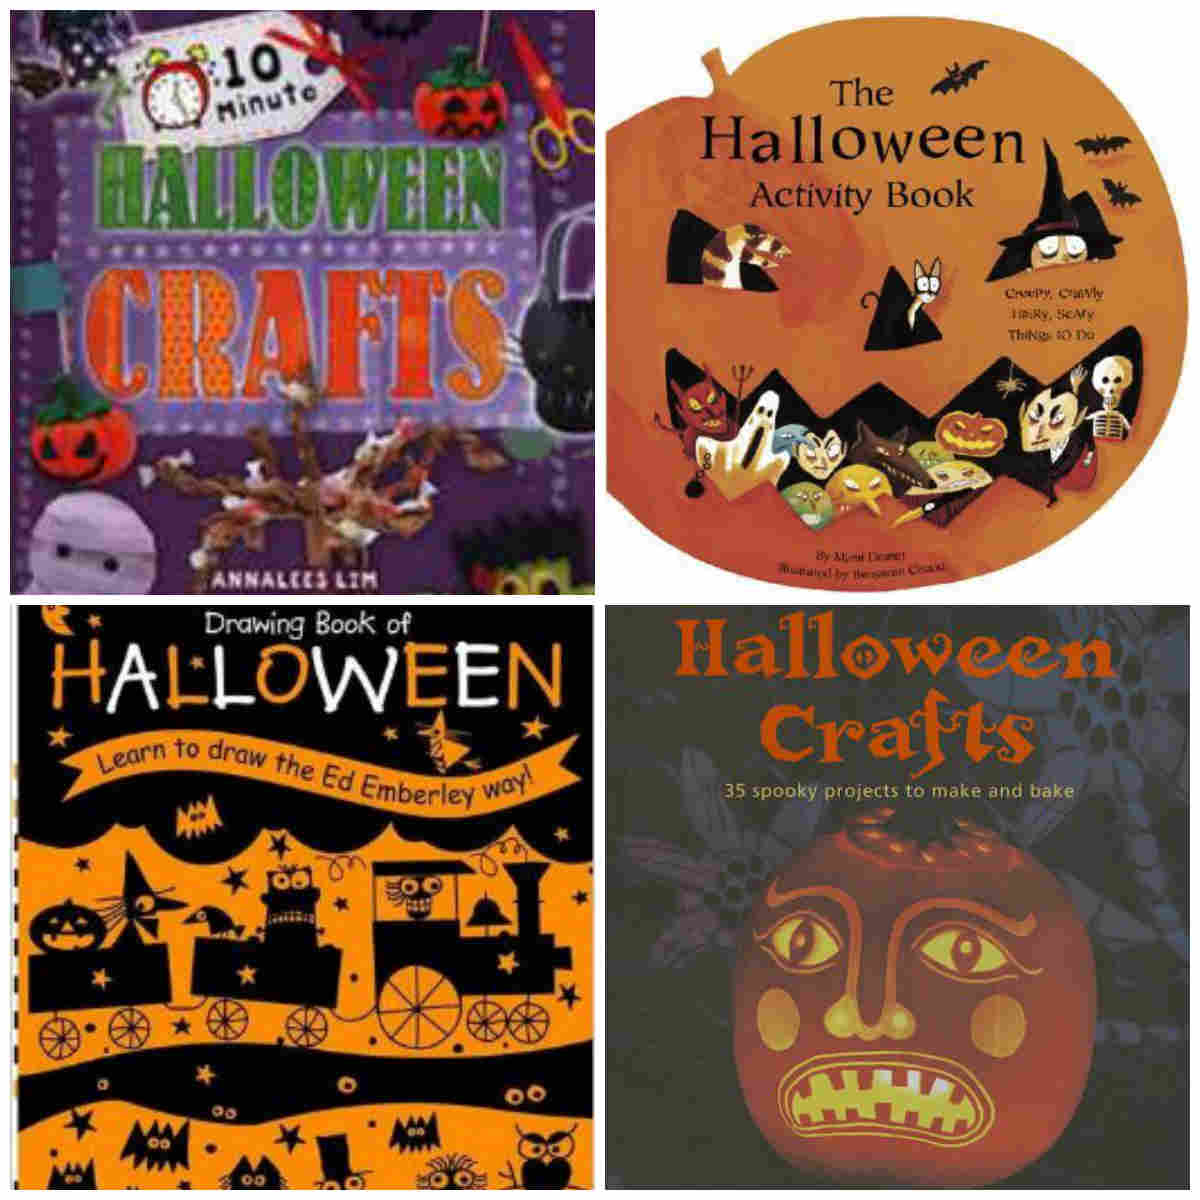 10 minute Halloween crafts, The Halloween activity book, Drawing book of Halloween, Halloween crafts